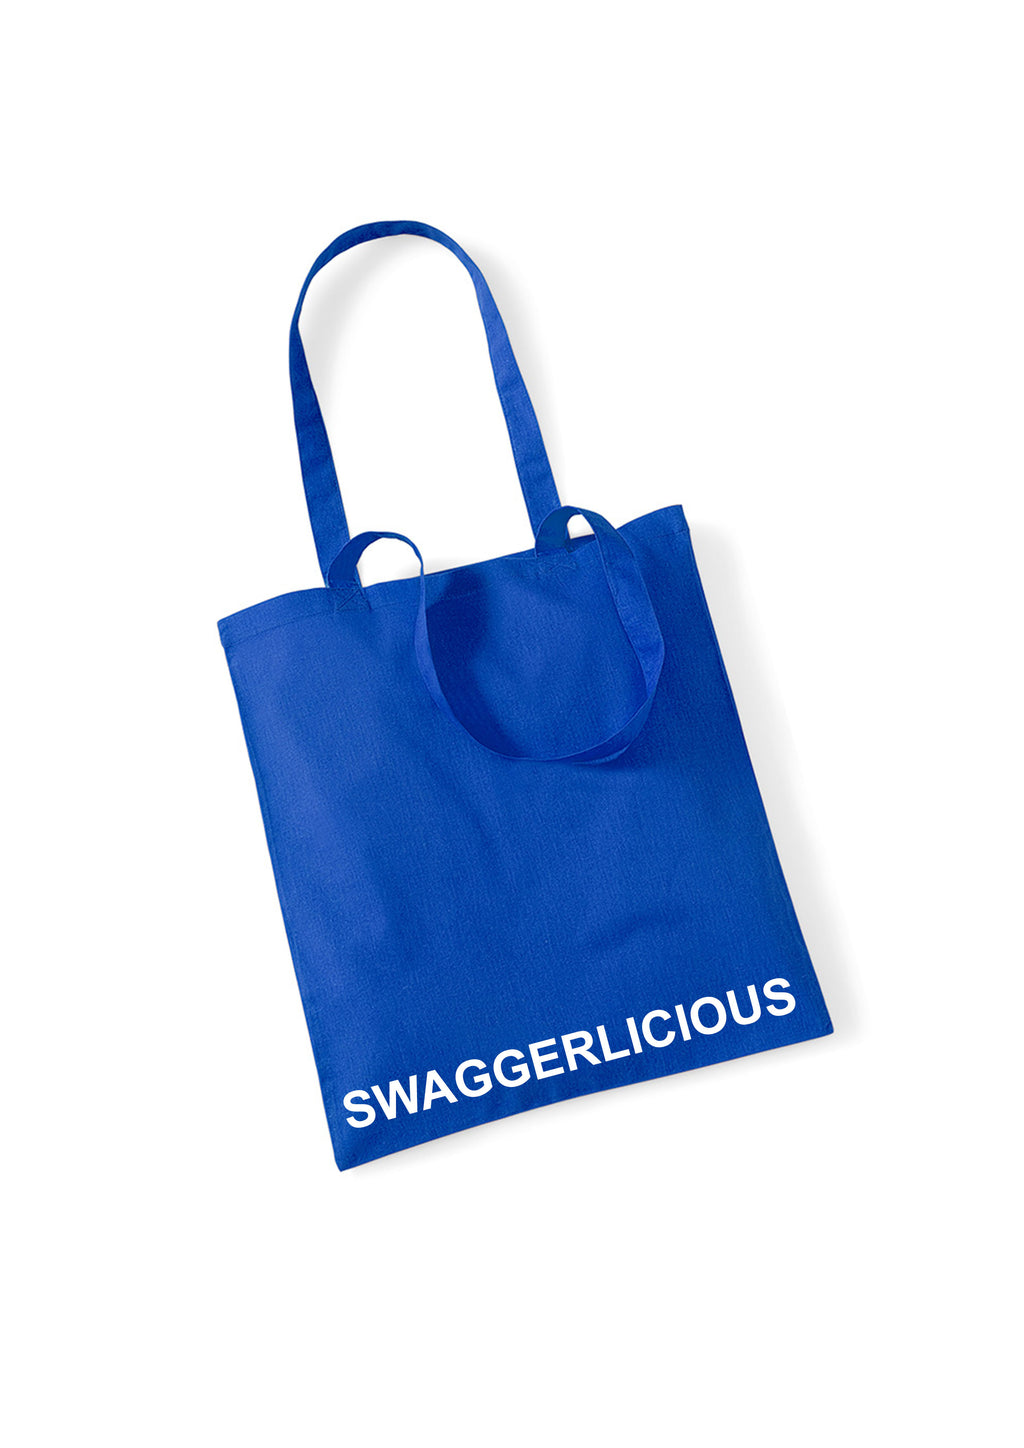 Swaggerlicious Blue Tote Bag - swaggerlicious-clothing.com